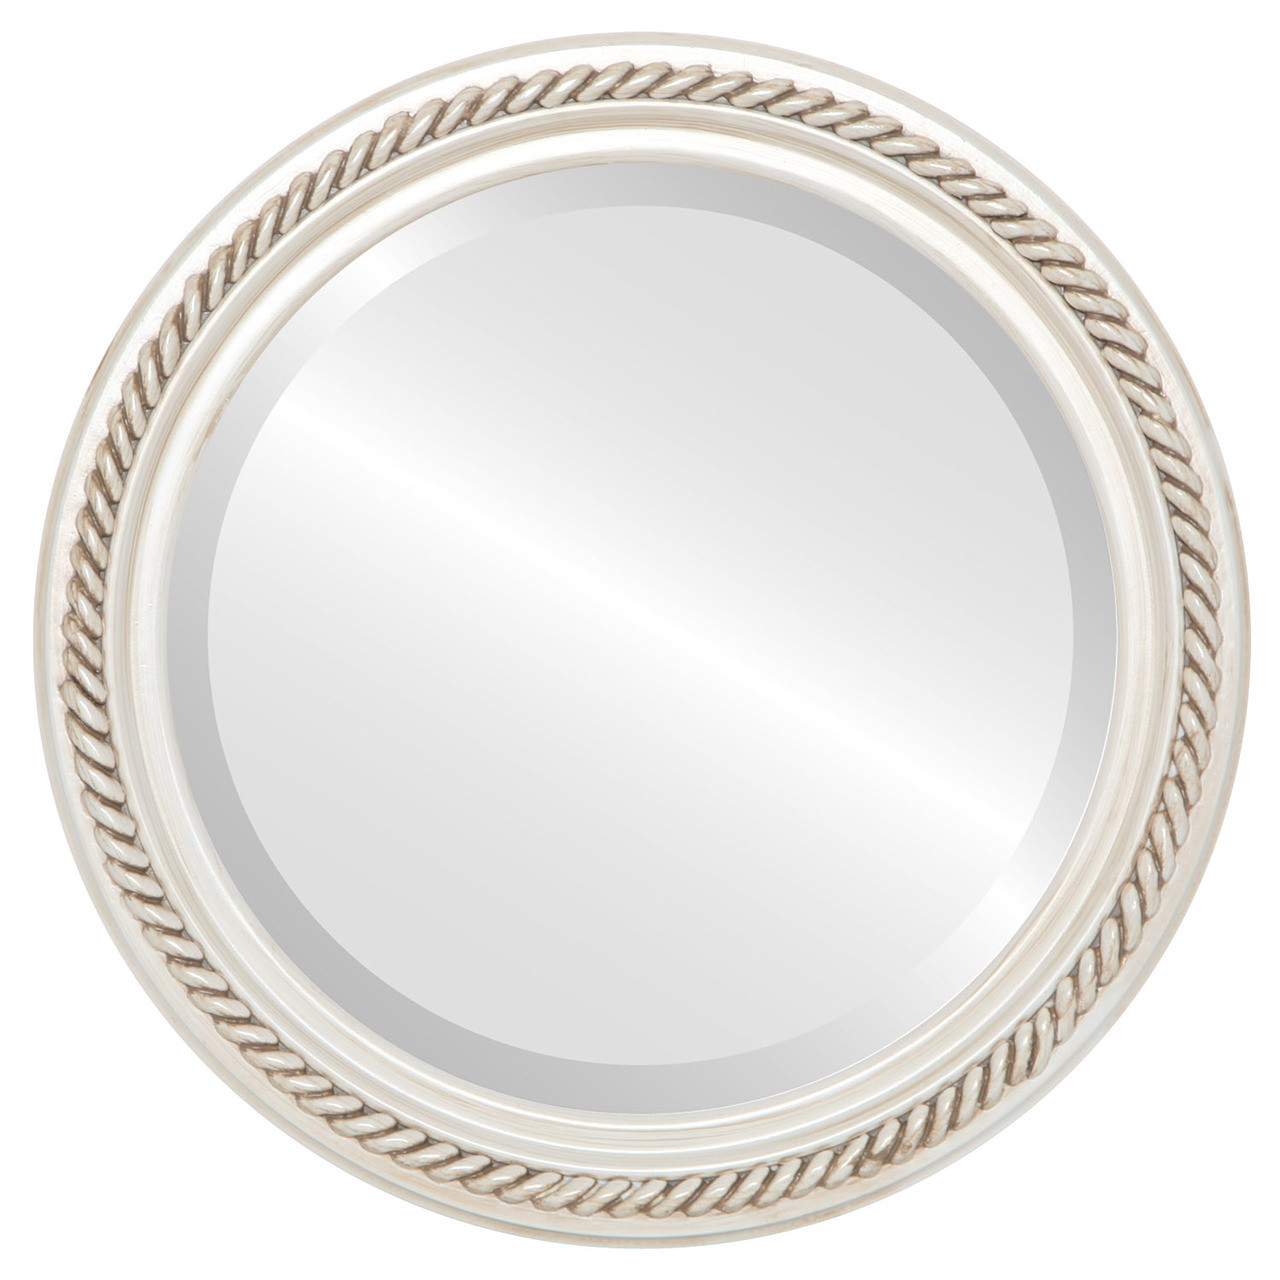 Antique White Round Mirrors from $136 | Free Shipping